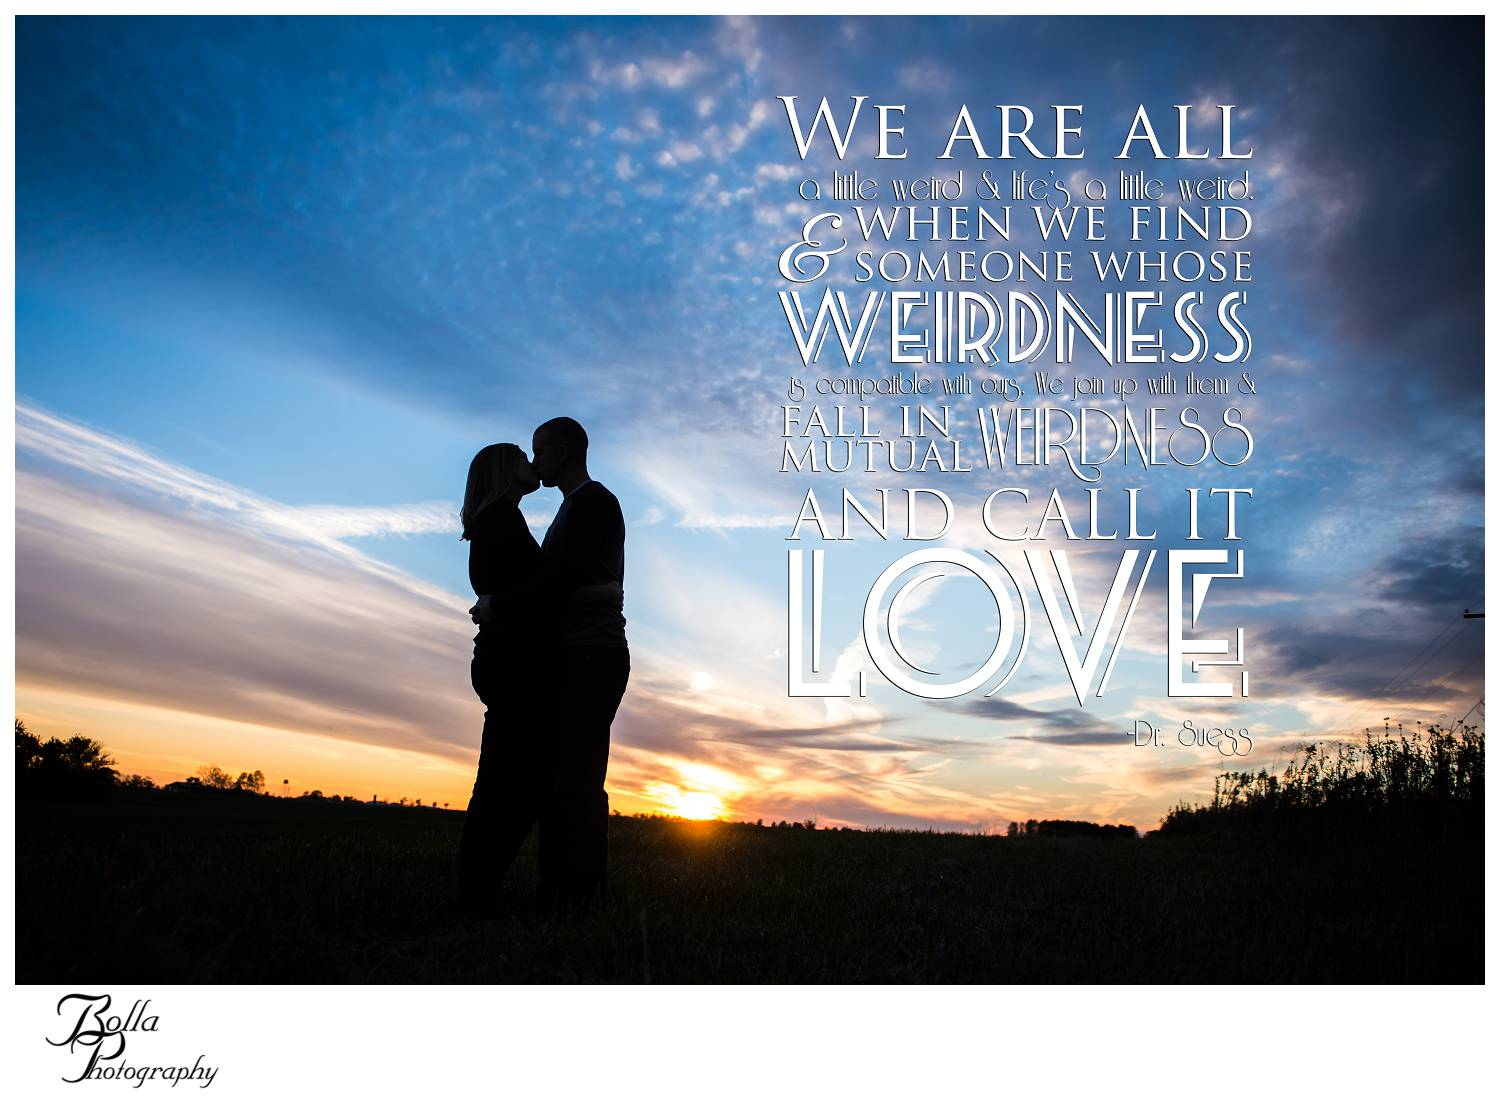 st-louis-engagement-clinton-county-carlyle-dr-suess-weird-love